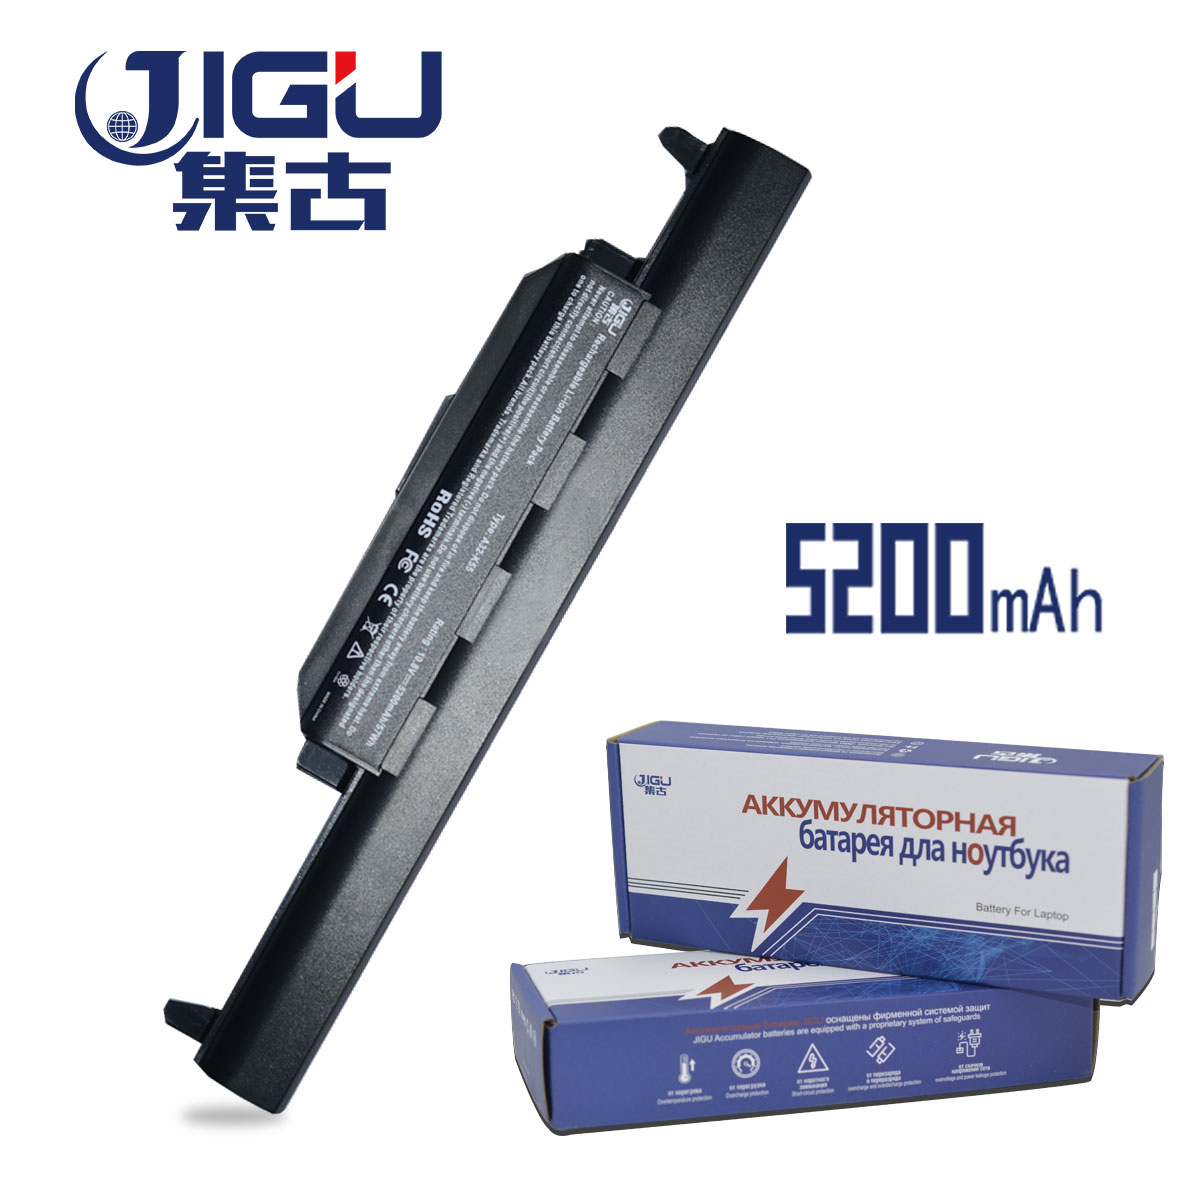 JIGU X55a 6 Cells Laptop Battery For ASUS A32-K55 K55 Series A33-K55 A41-K55 A75A A95 A55D Series K45D K45VM A45A A45DE Battery 6cell laptop battery a32 k55 a33 k55 a41 k55 for asus x55u x55v x55vd x75 x75a x75v x75vd k55